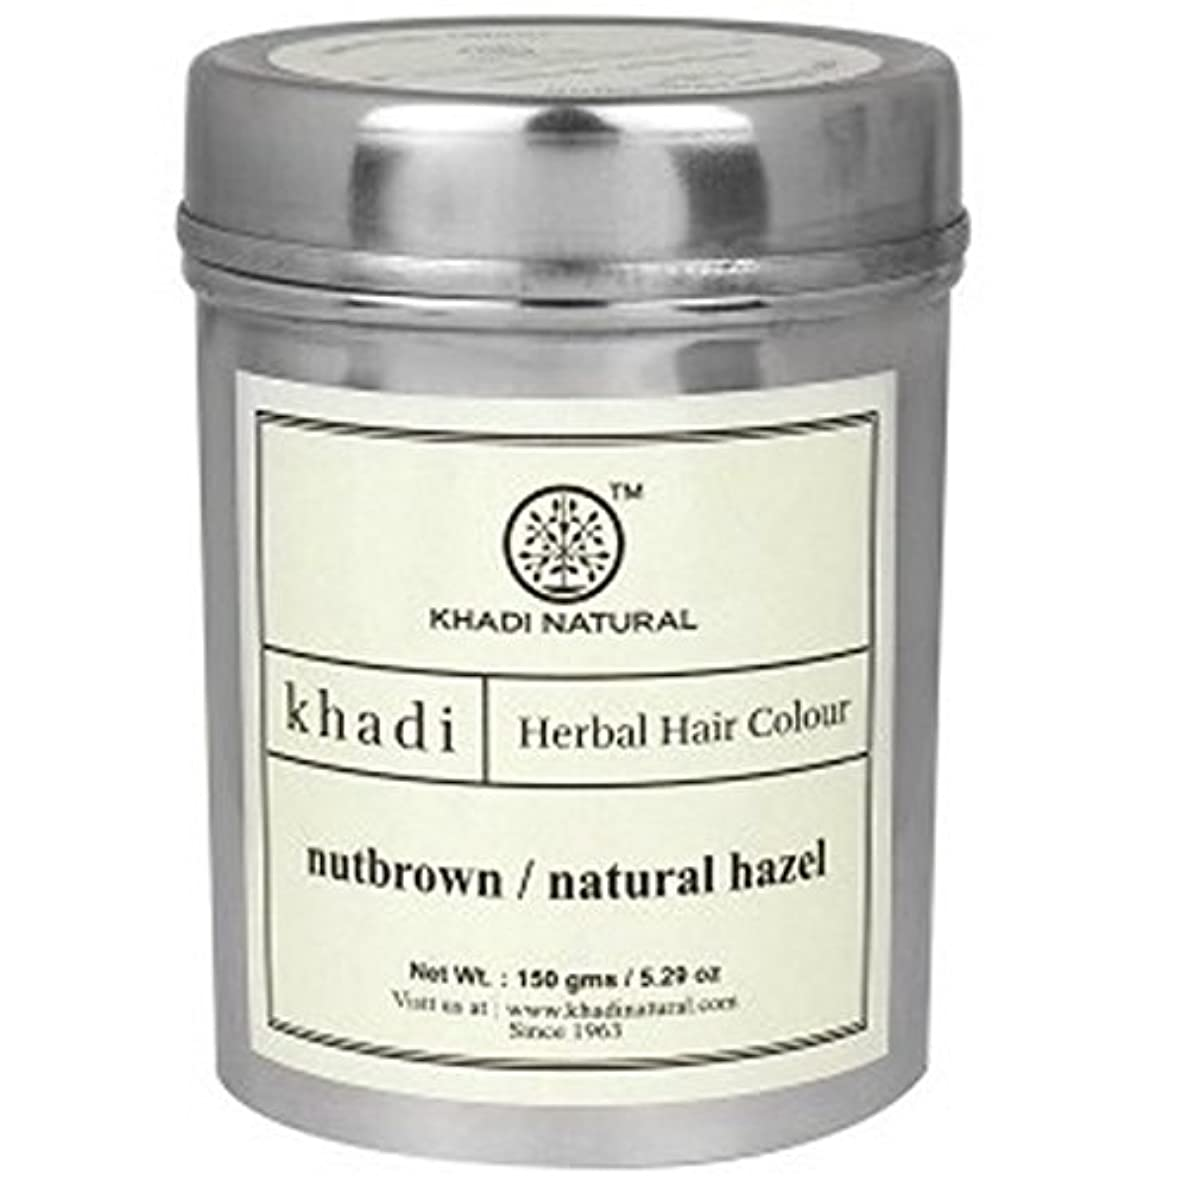 を通して外側チューインガムKhadi Natural Nutbrown / Natural Hazel Herbal Hair Colour